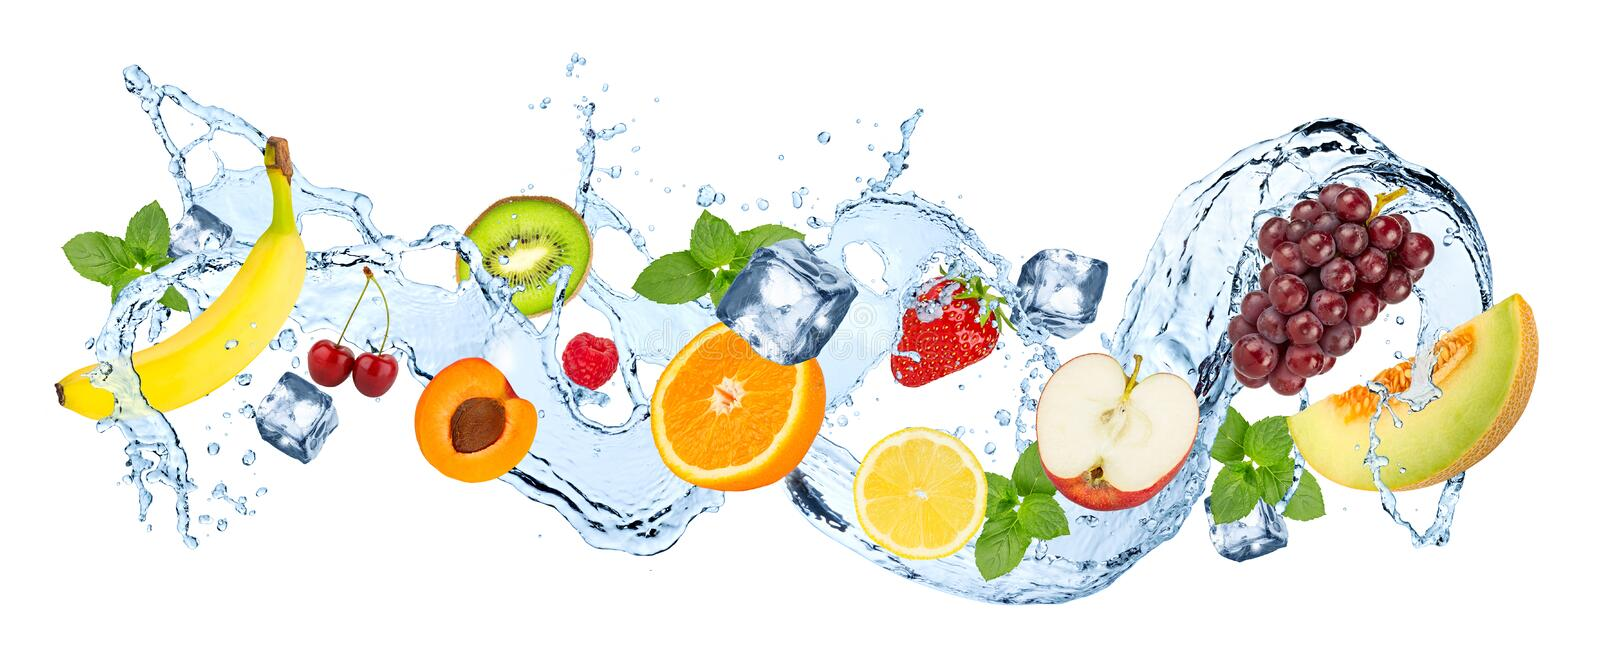 Multivitamin water fruit splash wave. Multivitamin water splash wave with various fruits peppermint leafs and ice cubes isolated on white background stock illustration